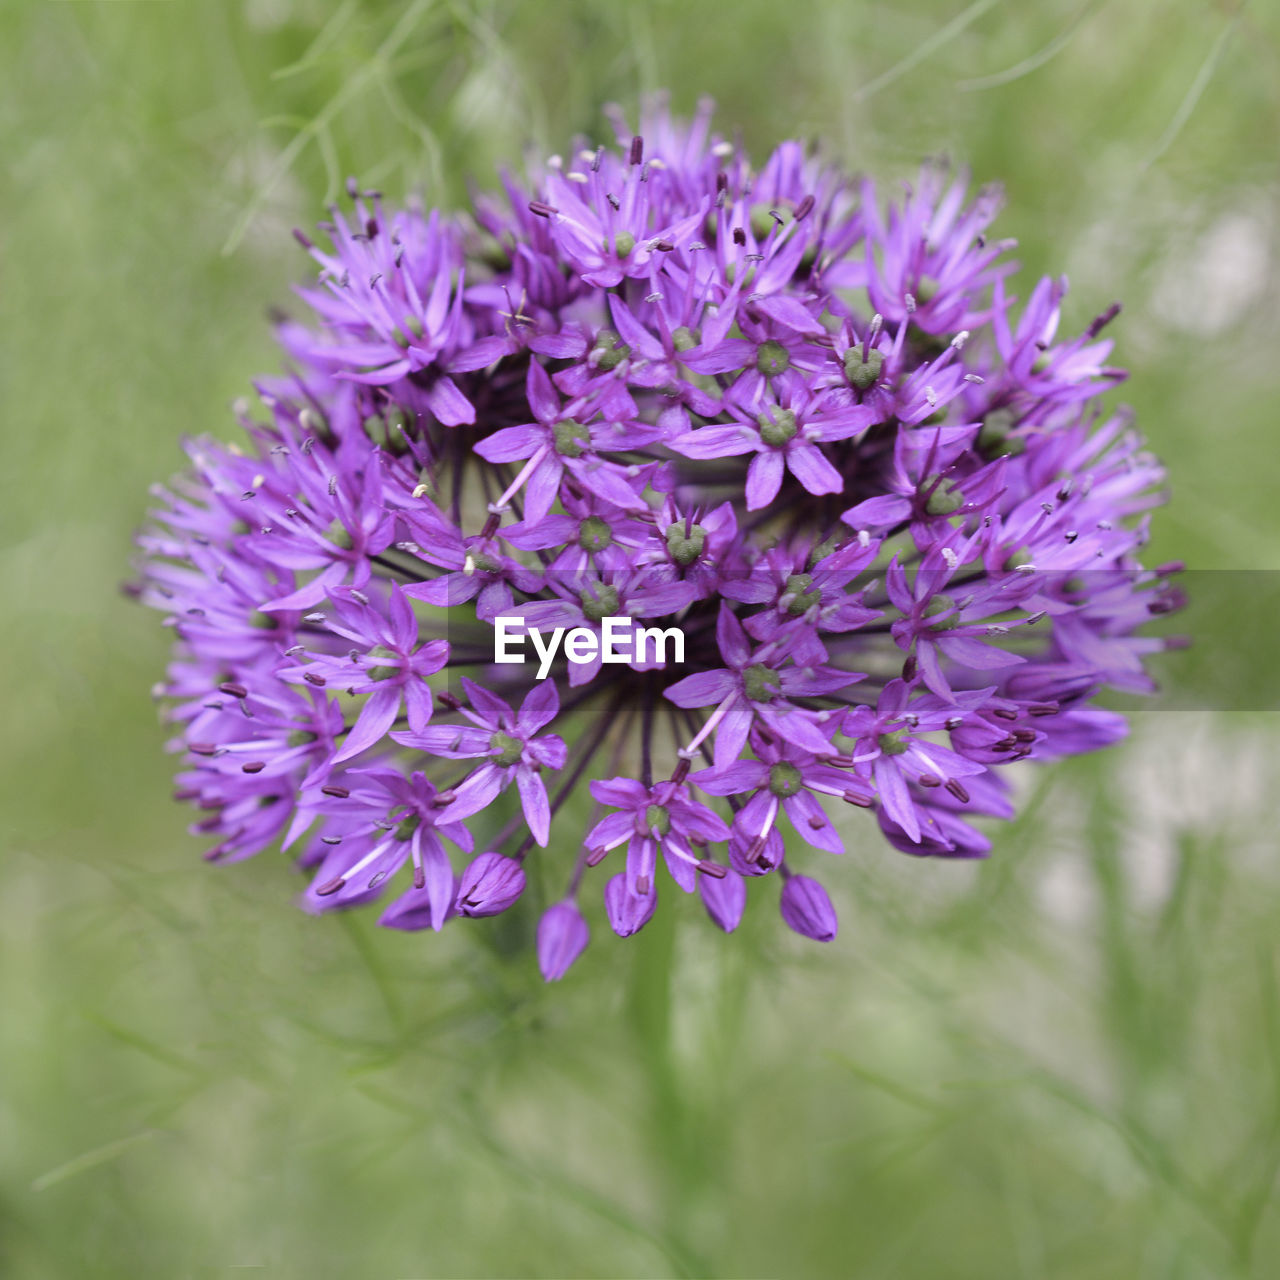 CLOSE-UP OF PURPLE FLOWERING PLANT GROWING OUTDOORS